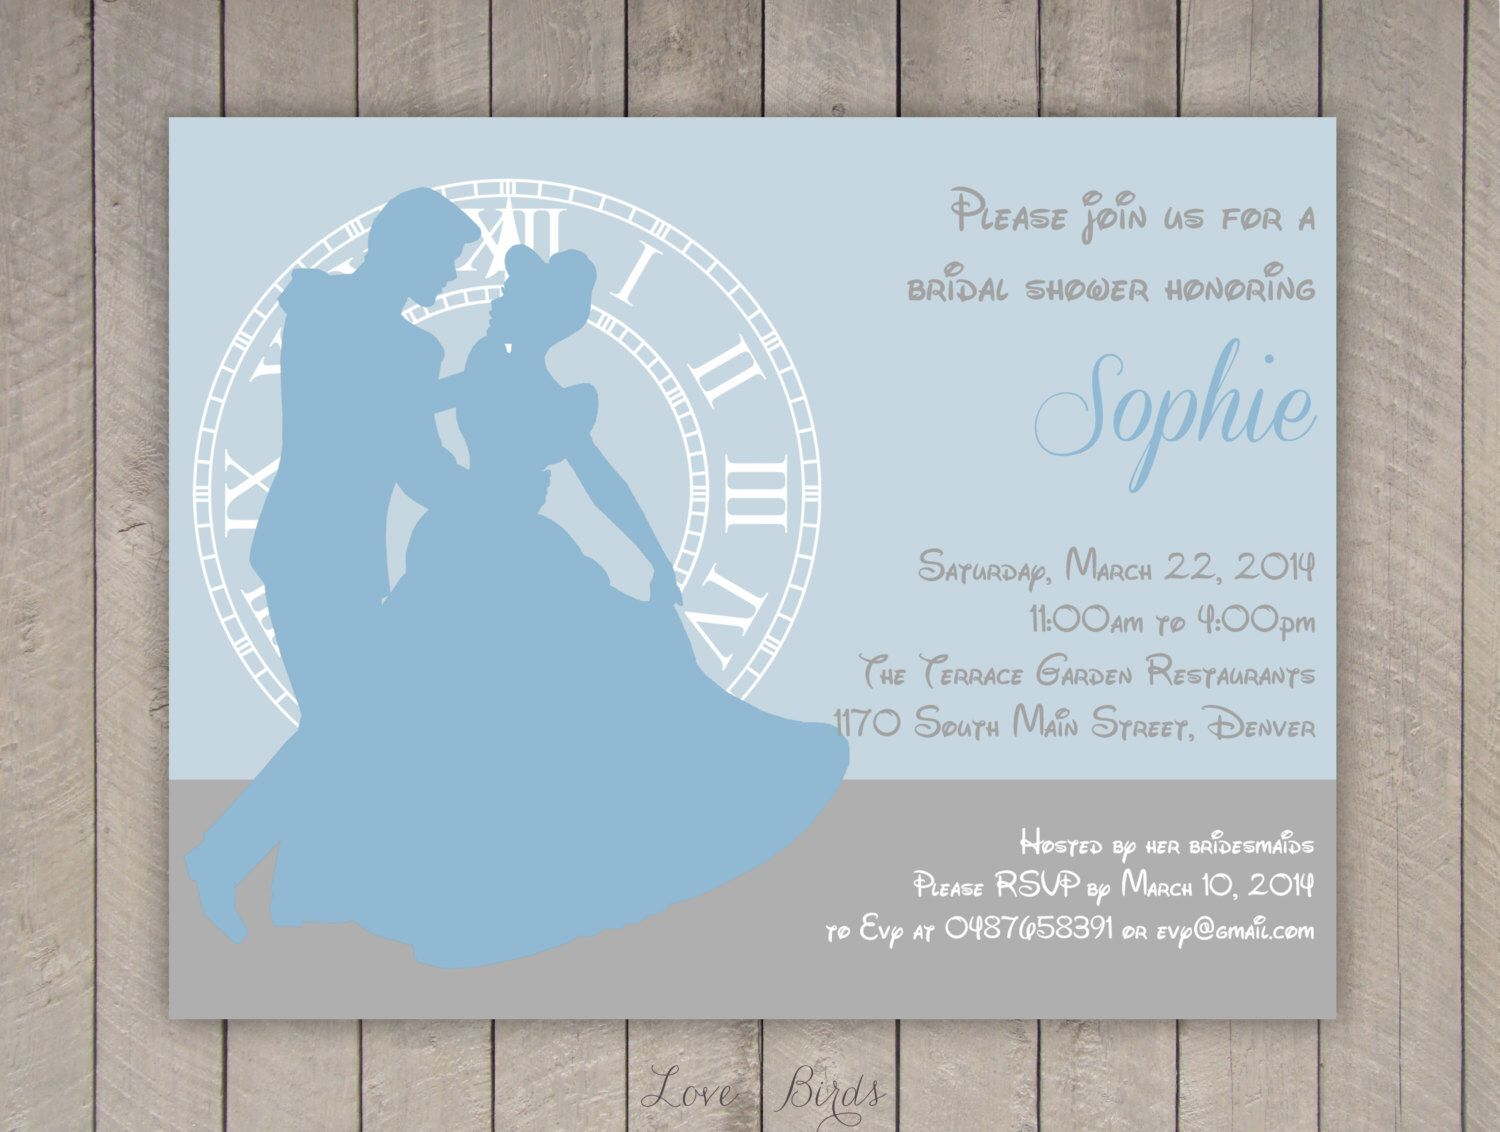 Bridal Shower Invitation, Personalize Get File Then Print On High Quality  Paper At Office Depot